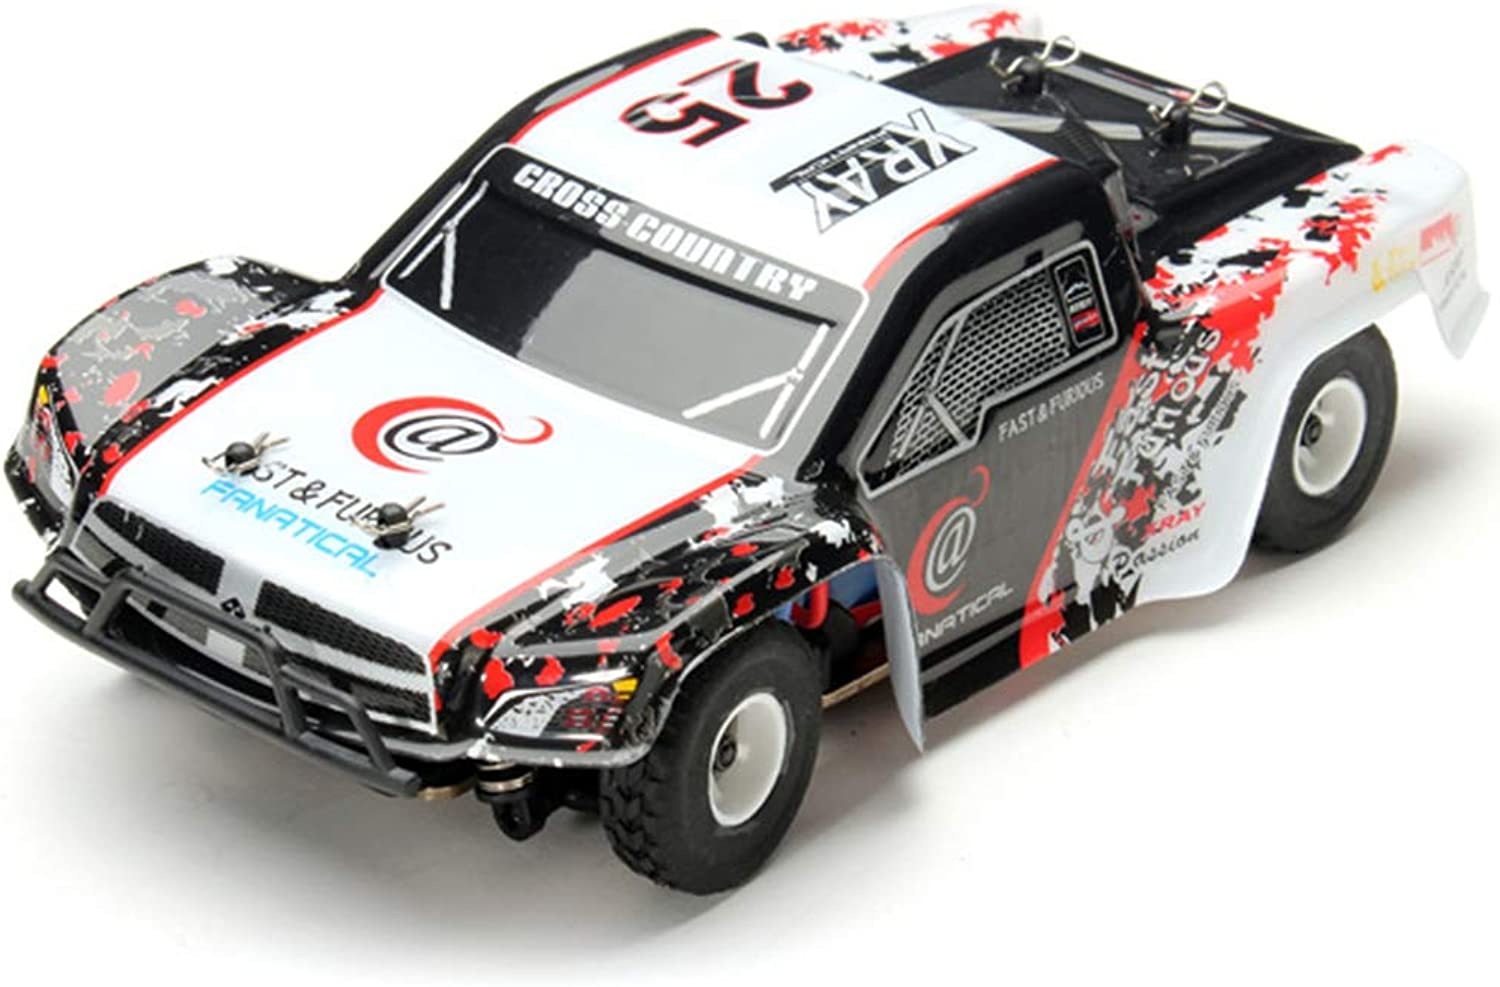 Remote Control car 1 28 Off-Road Vehicle 2.4G Electric Four-Wheel Drive Remote Control car Alloy Chassis Climbing car Toy